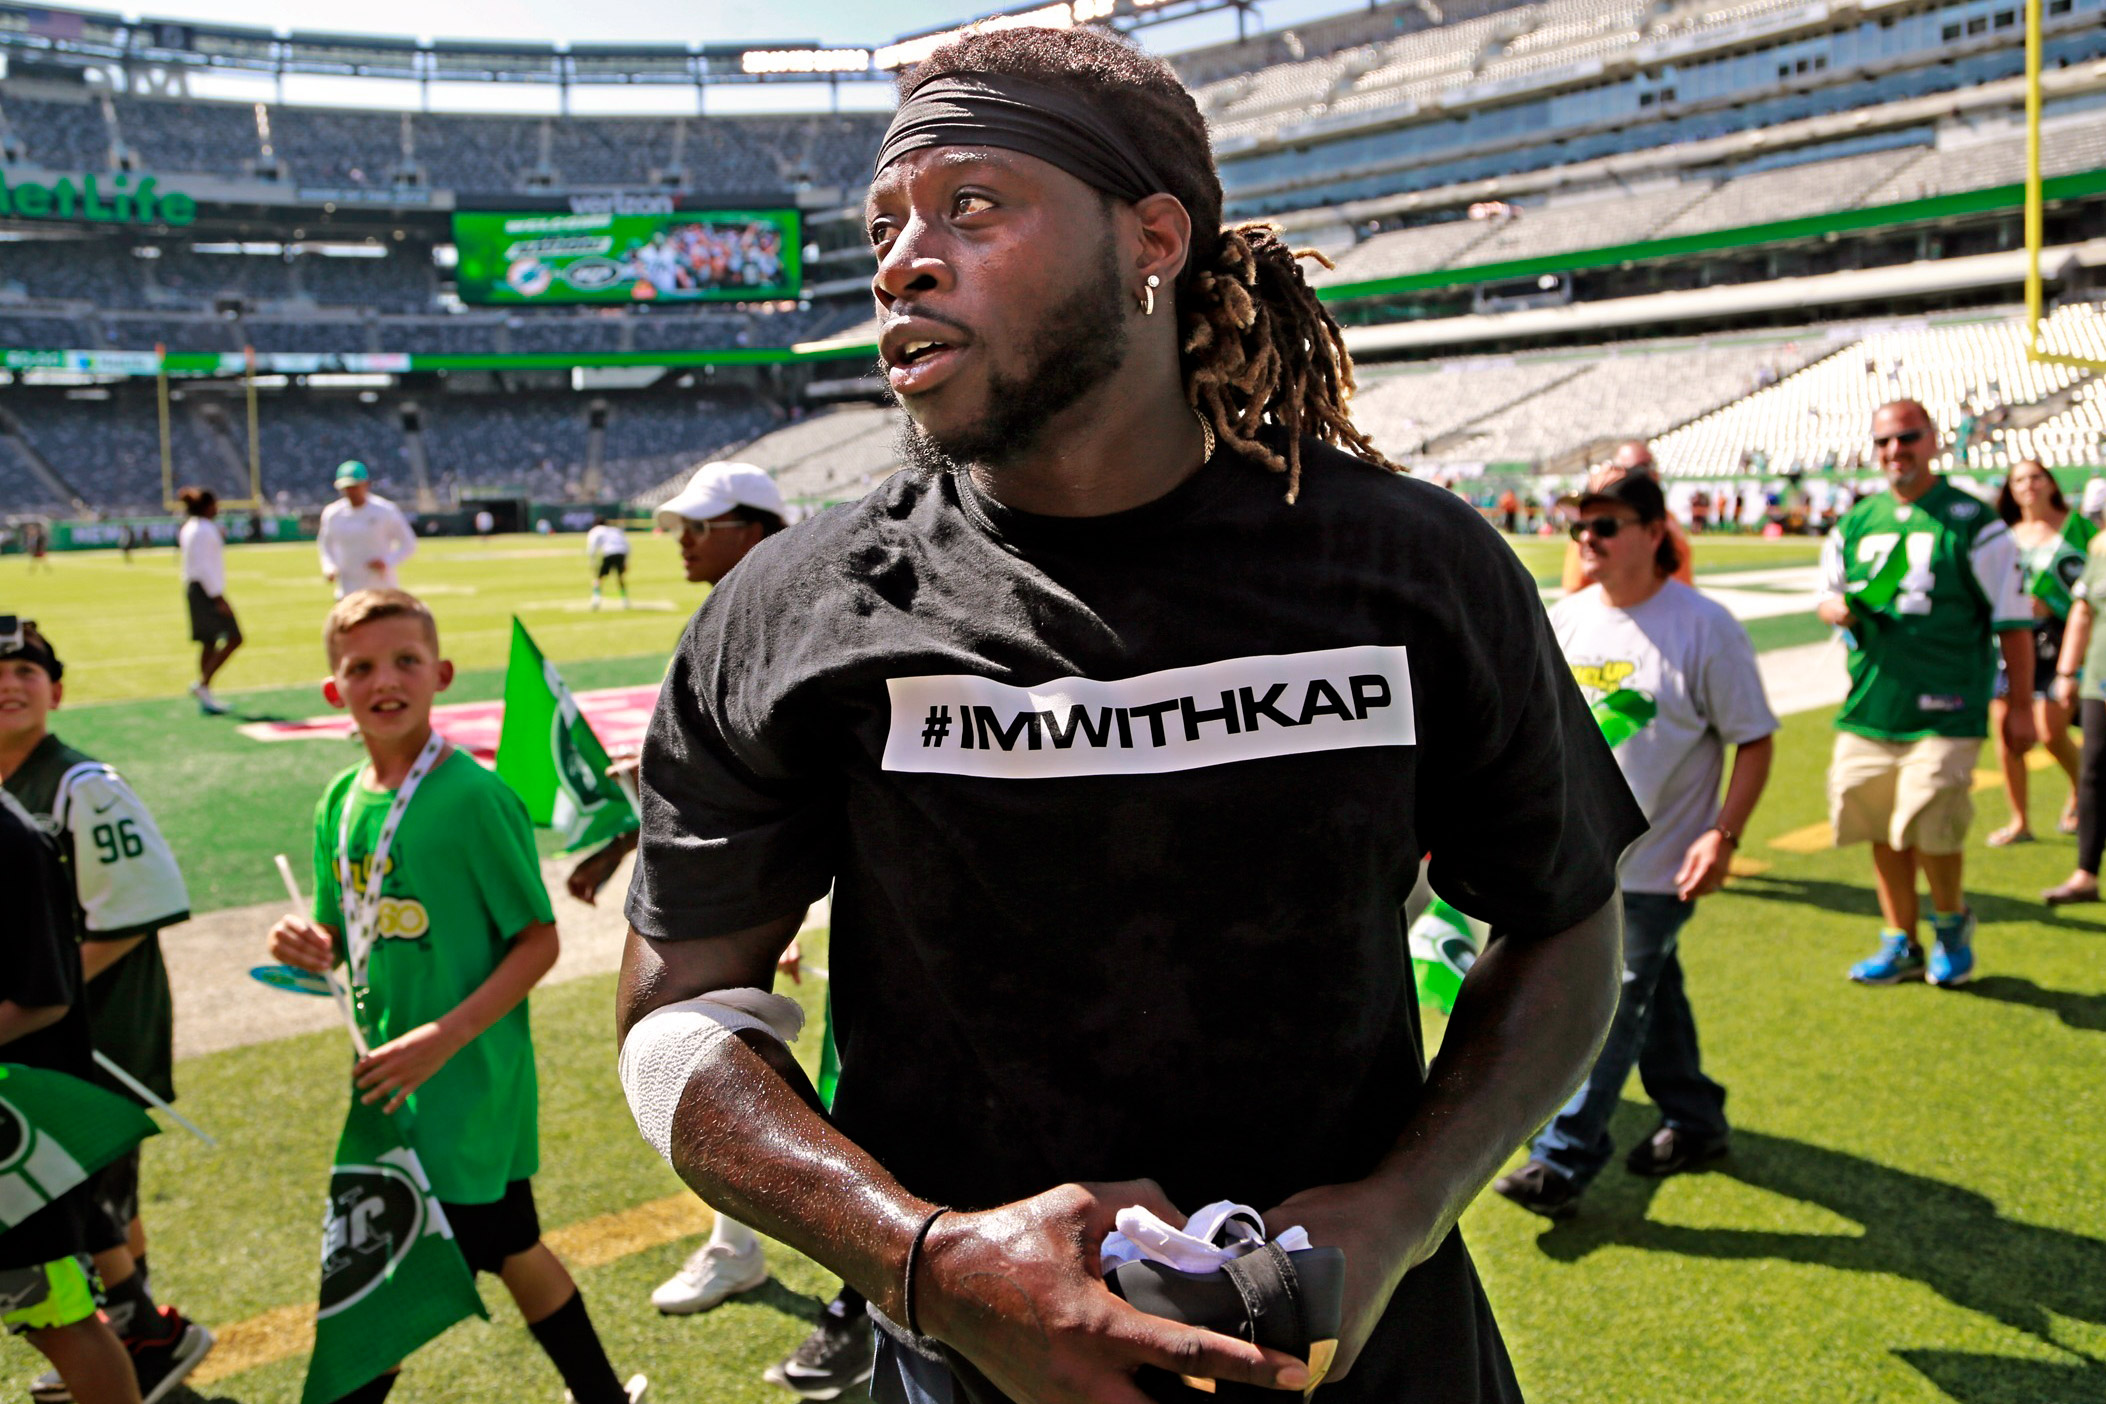 2e78ee69f19 Miami Dolphins running back Jay Ajayi (23) and several other Dolphin  players wear t-shirts in support of Colin Kaepernick before an NFL football  game as the ...